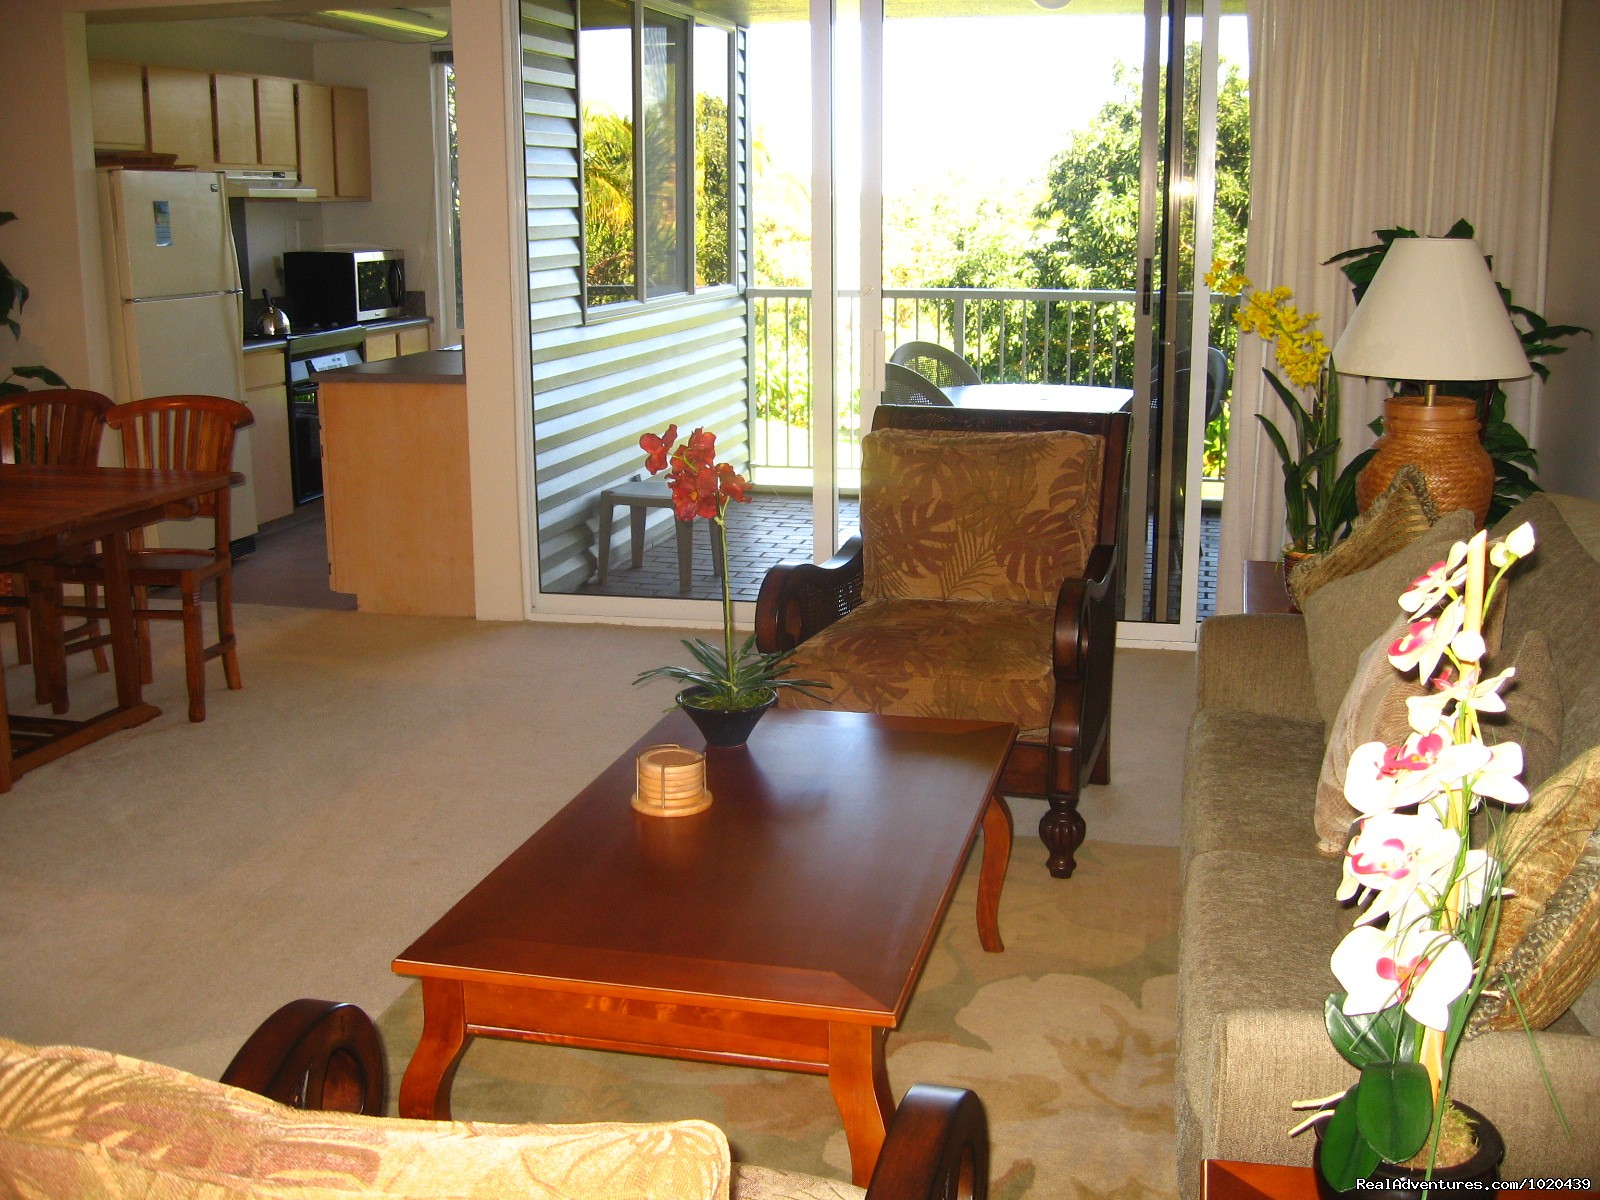 Living Room and Kitchen | Image #12/26 | Cliff's Honeymoon Condo Princeville, Kauai, Hawaii